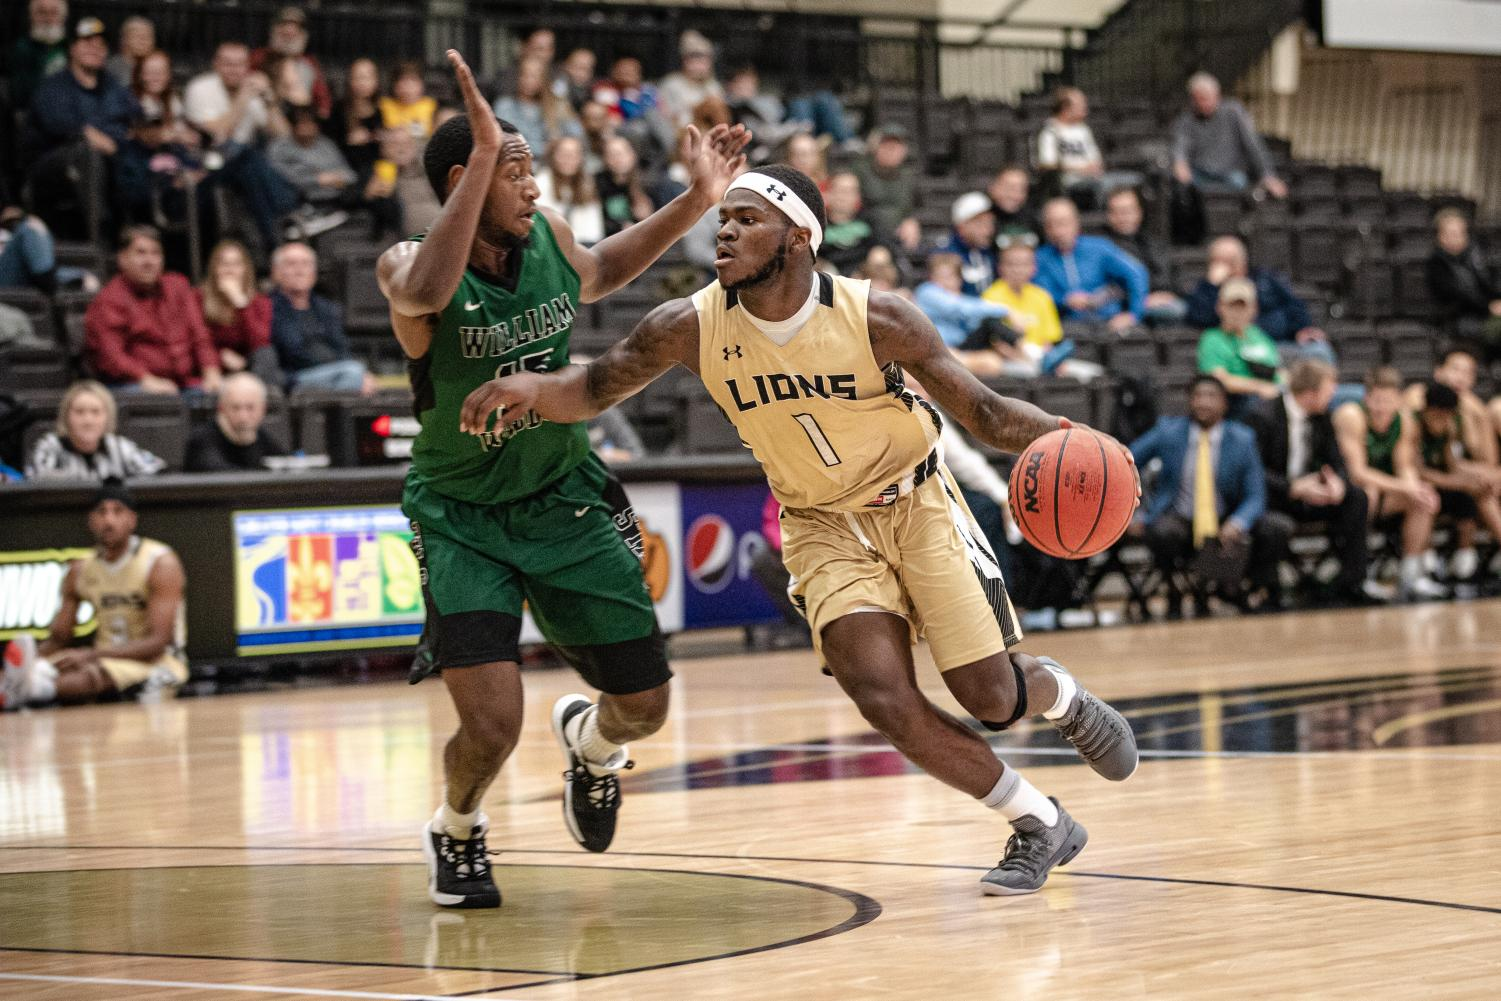 Junior T.J. Crockett (1) scored 27 points, leading the Lions to the win against William Woods. Lindenwood won 88-80.